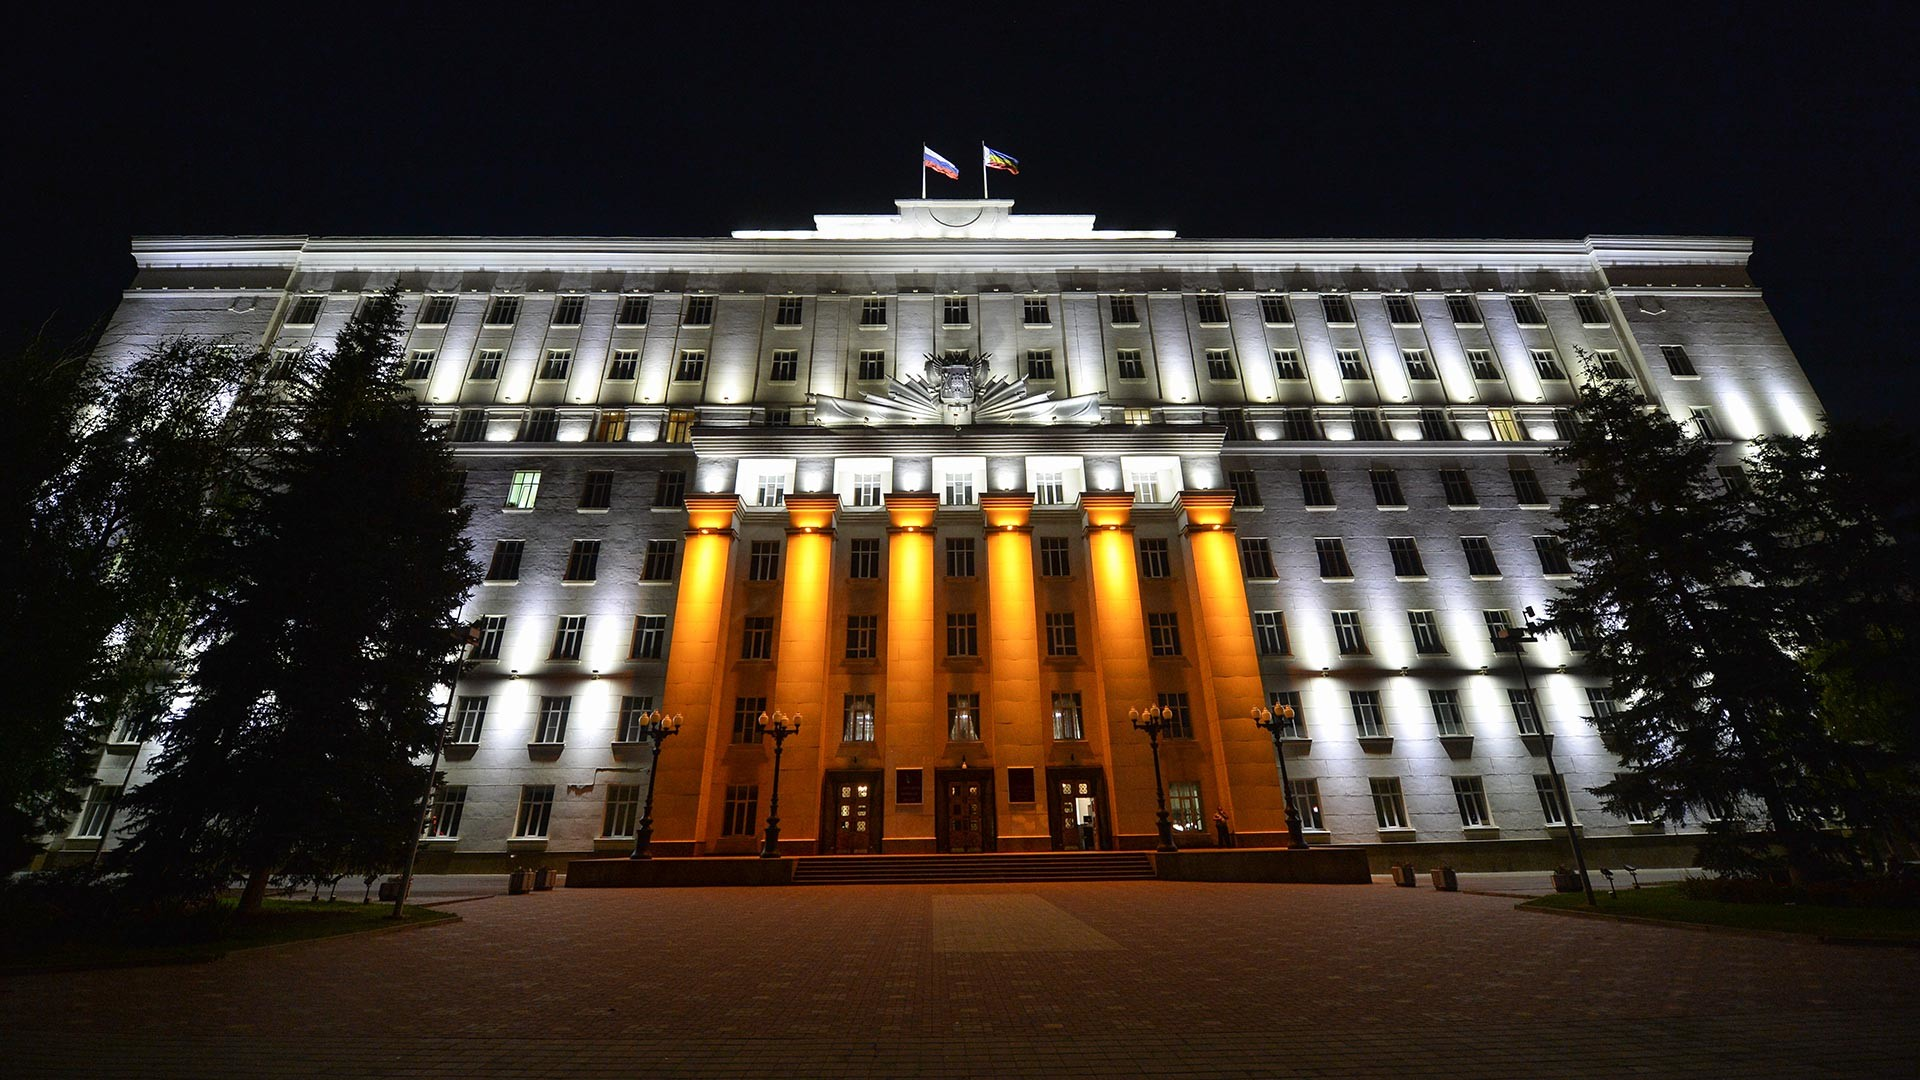 The building of the regional administration of Rostov-on-Don.